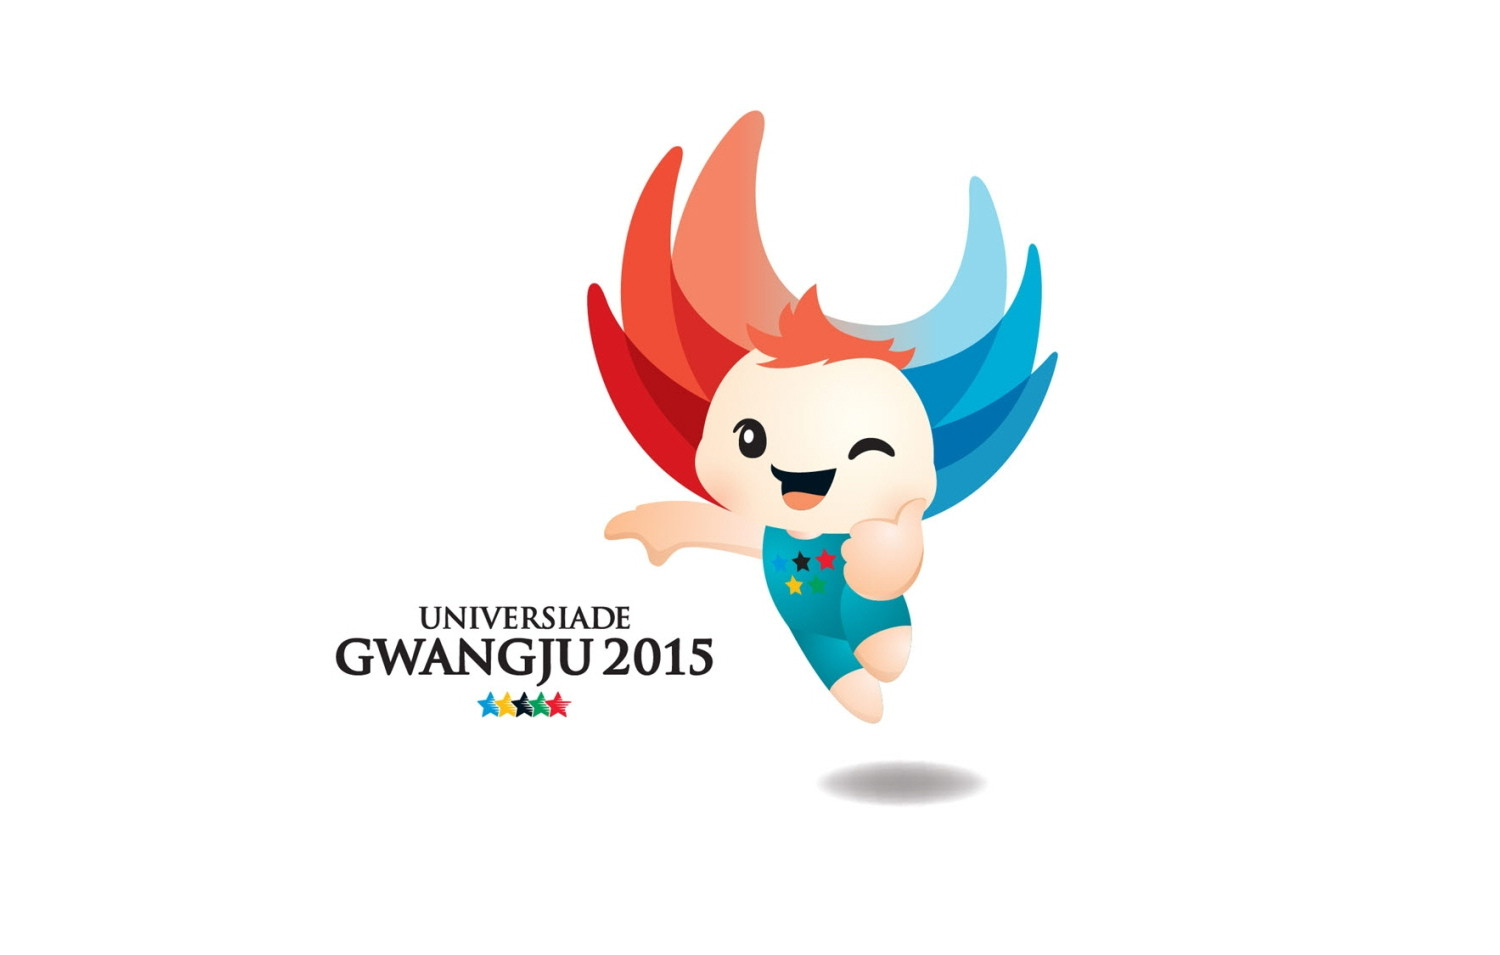 The mascot of the Universiade Gwangju 2015 is a Nuribi figure.